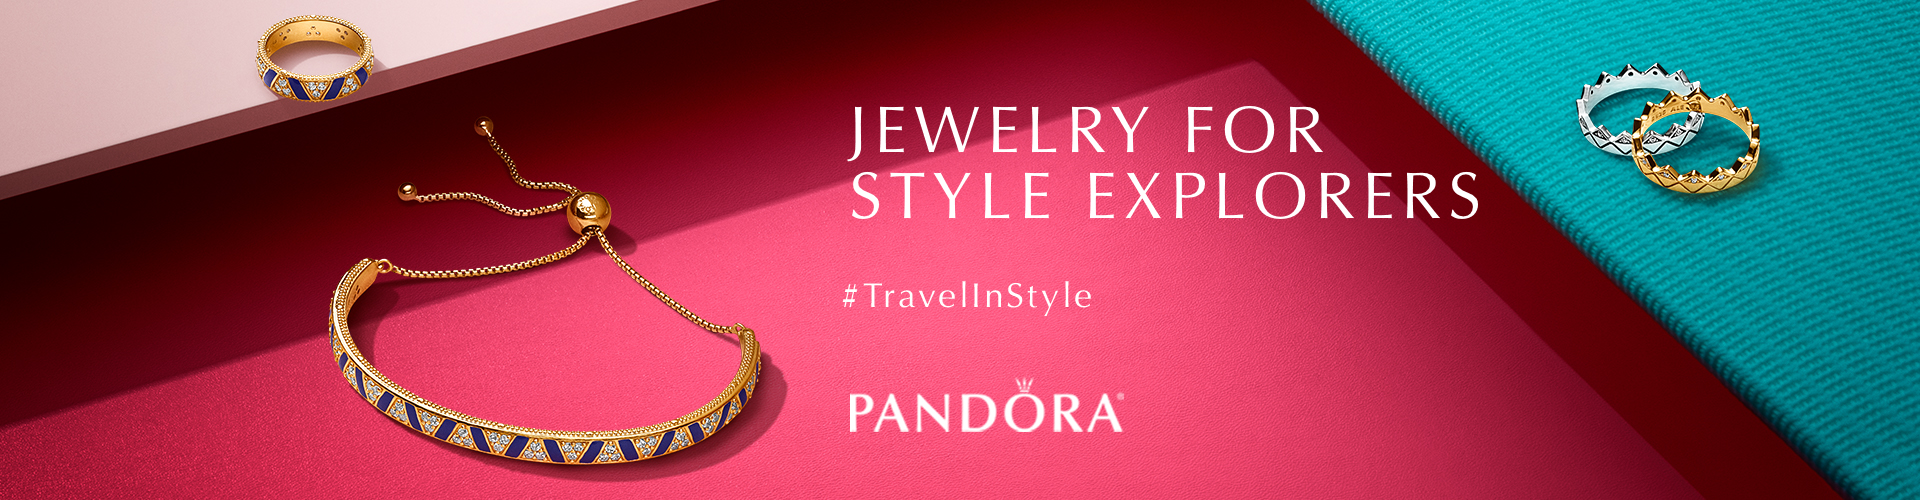 Pandora Jewelry For Style Explorers